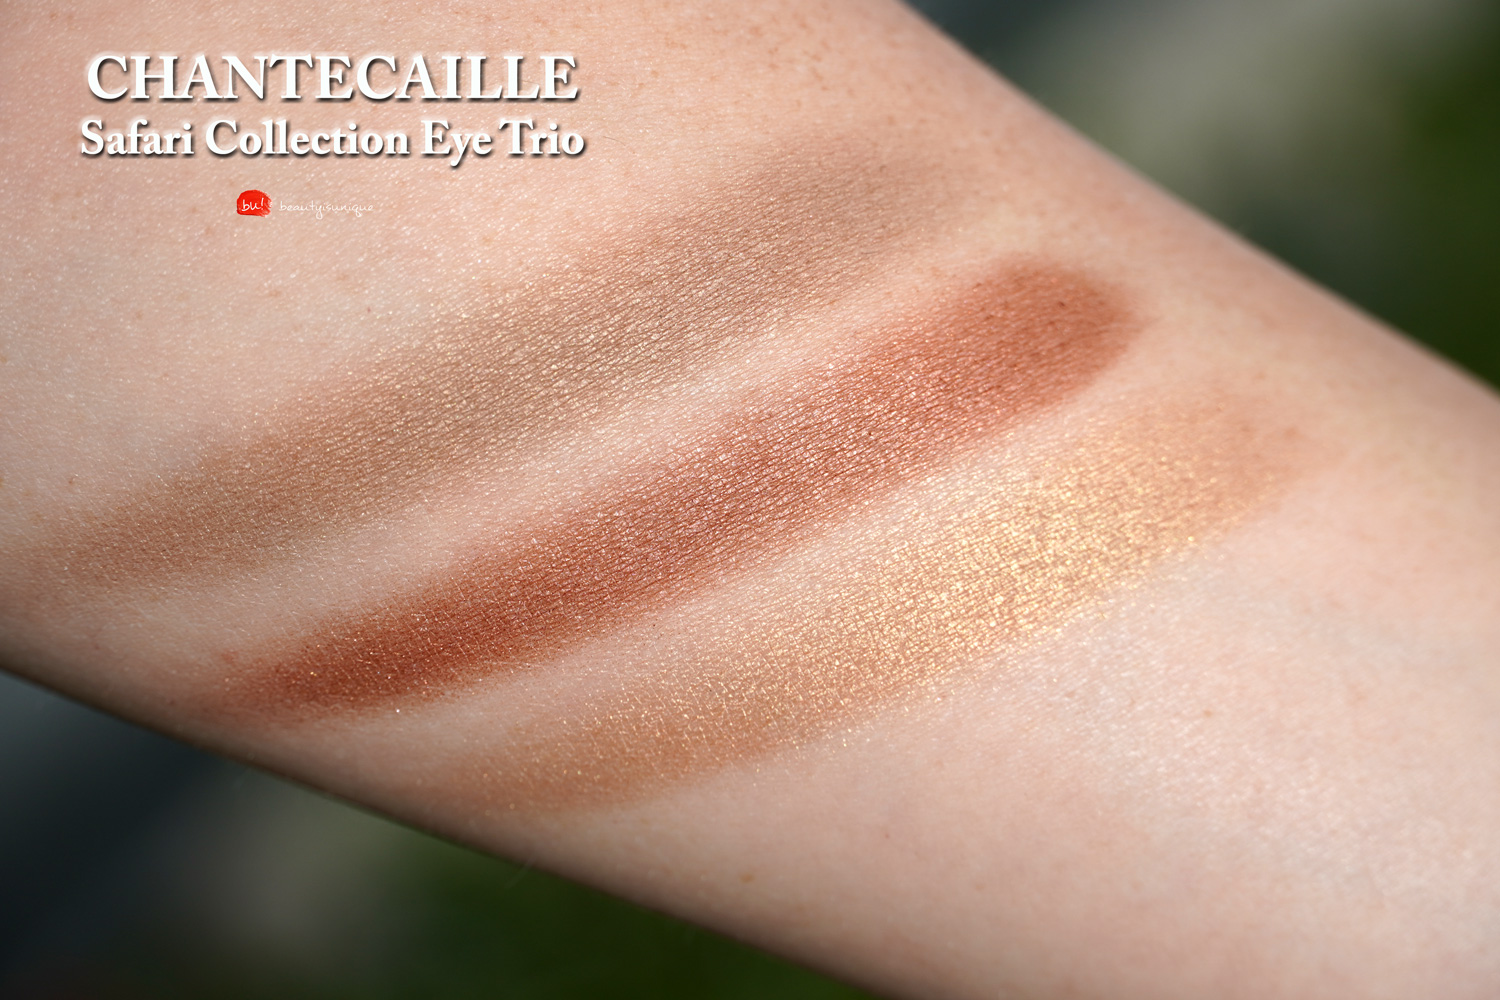 chantecaille-safari-collection-eye-trio-swatches